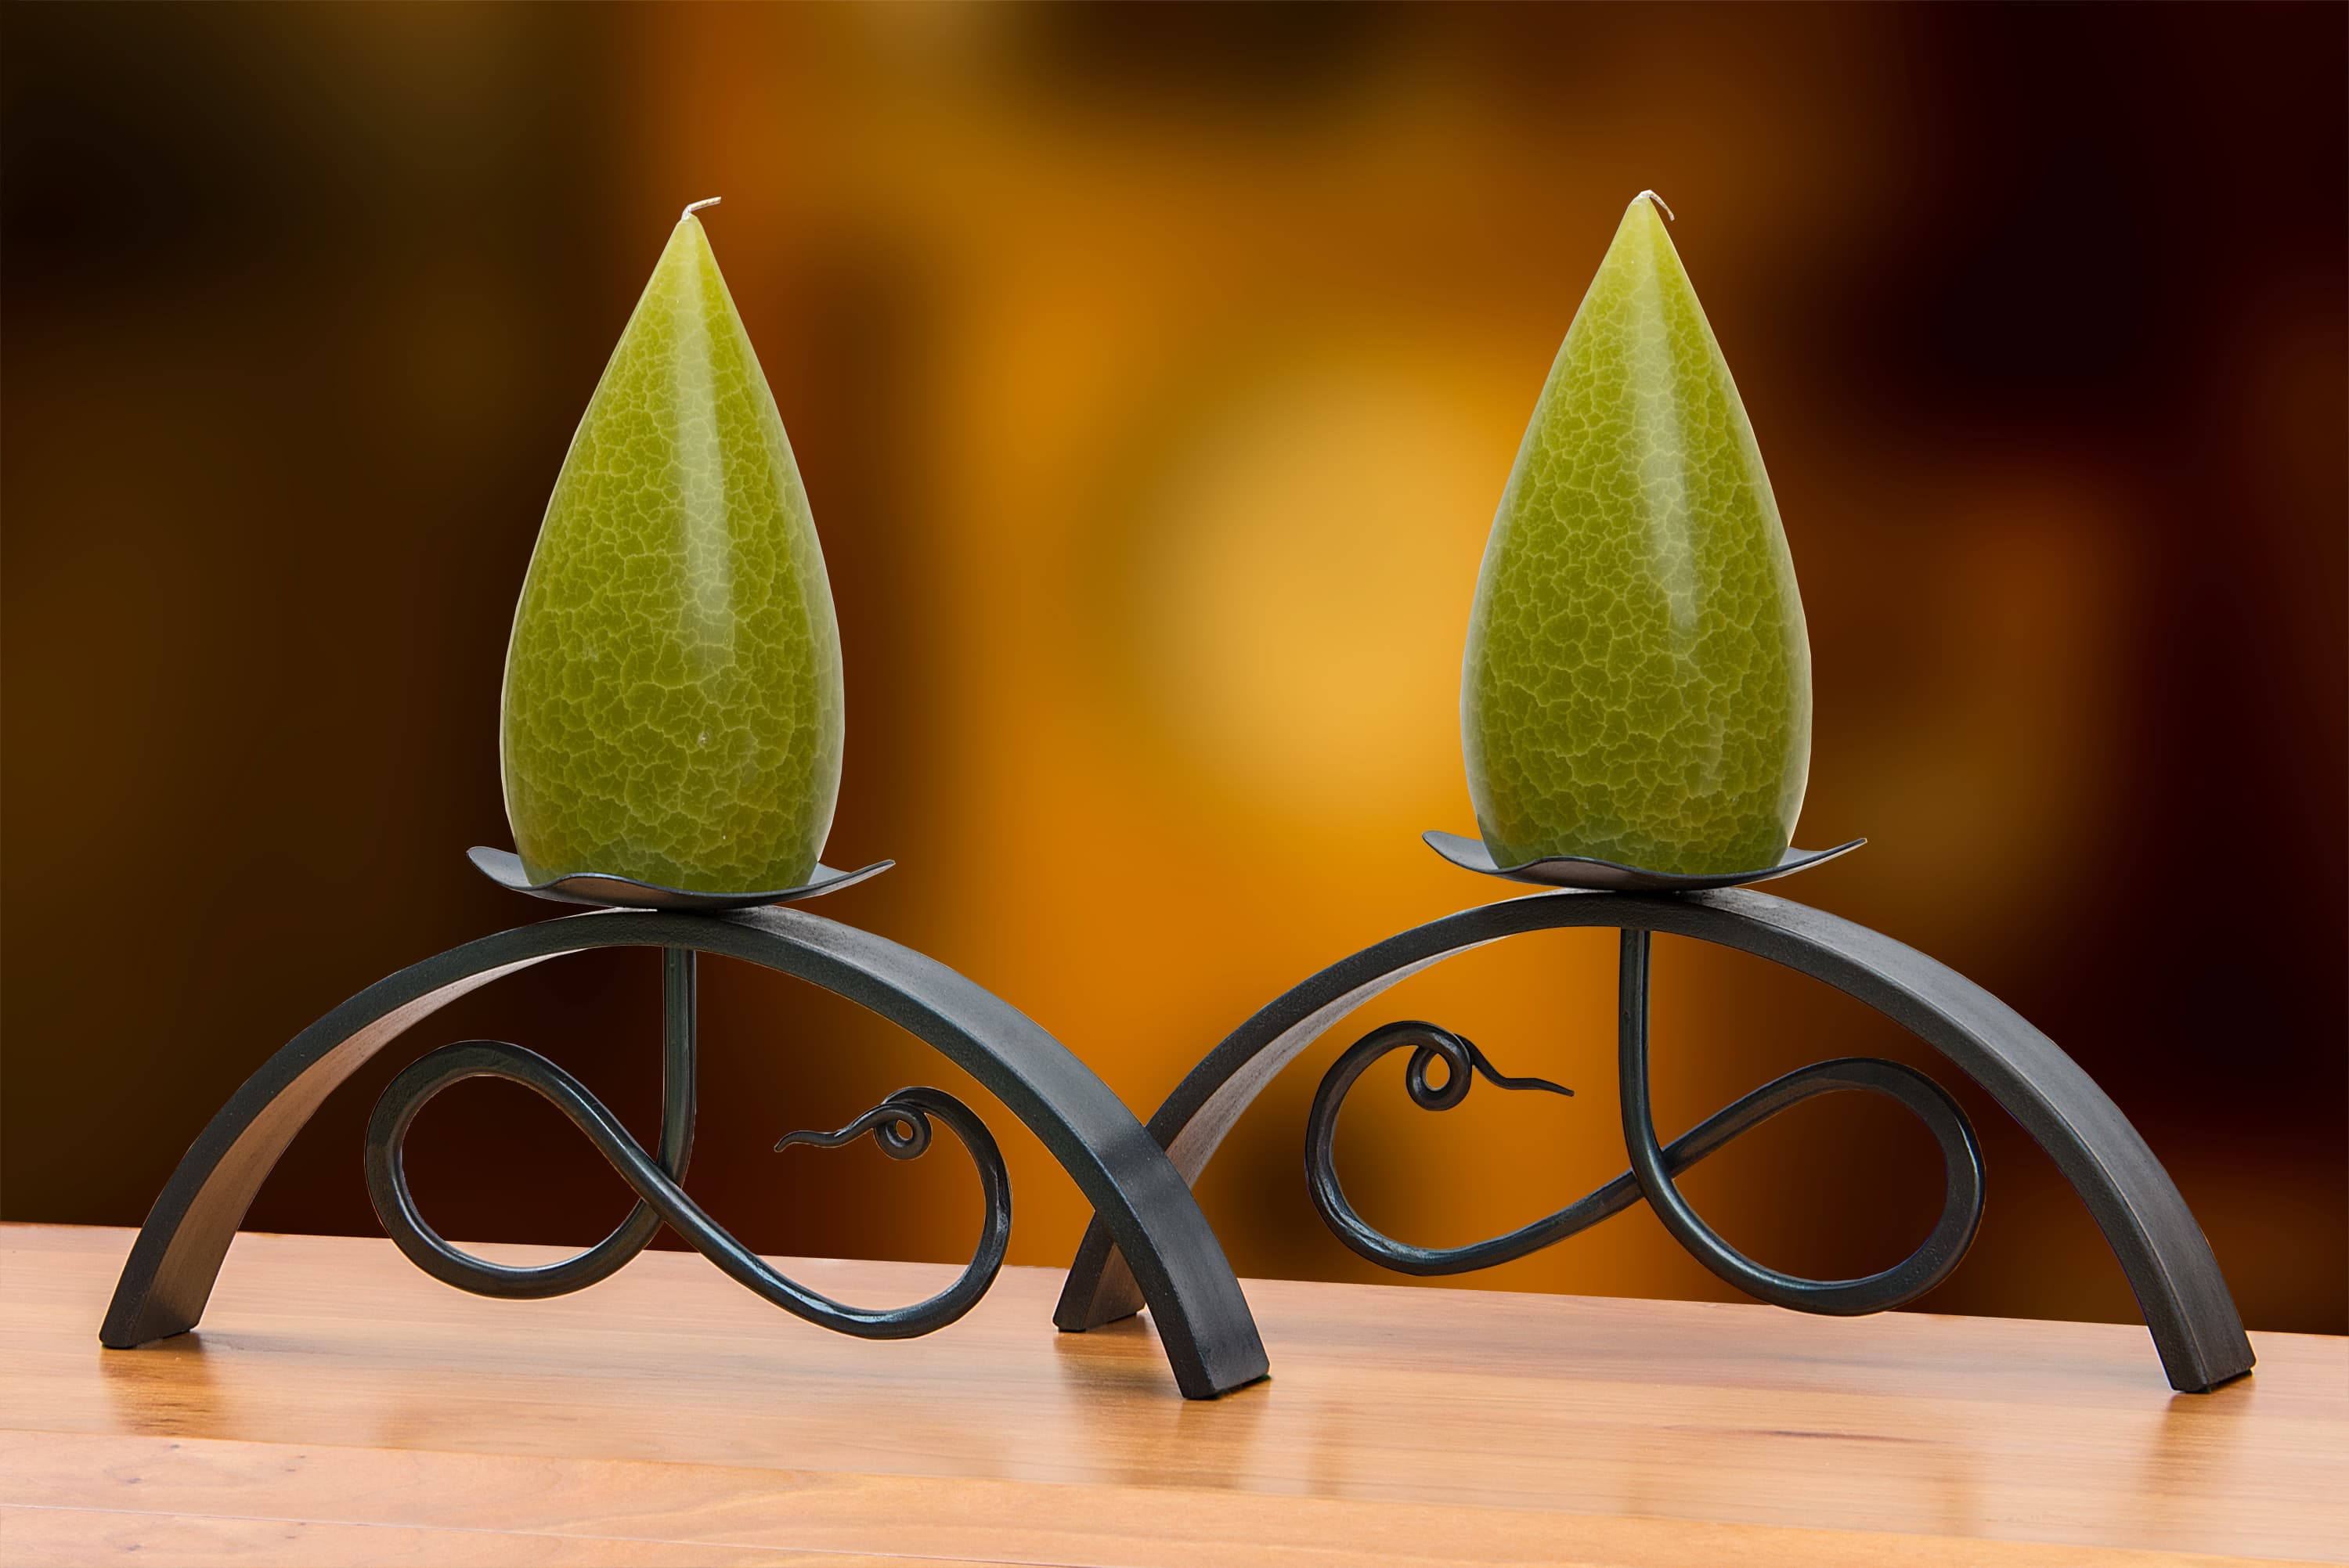 iron-candle-holders-2w